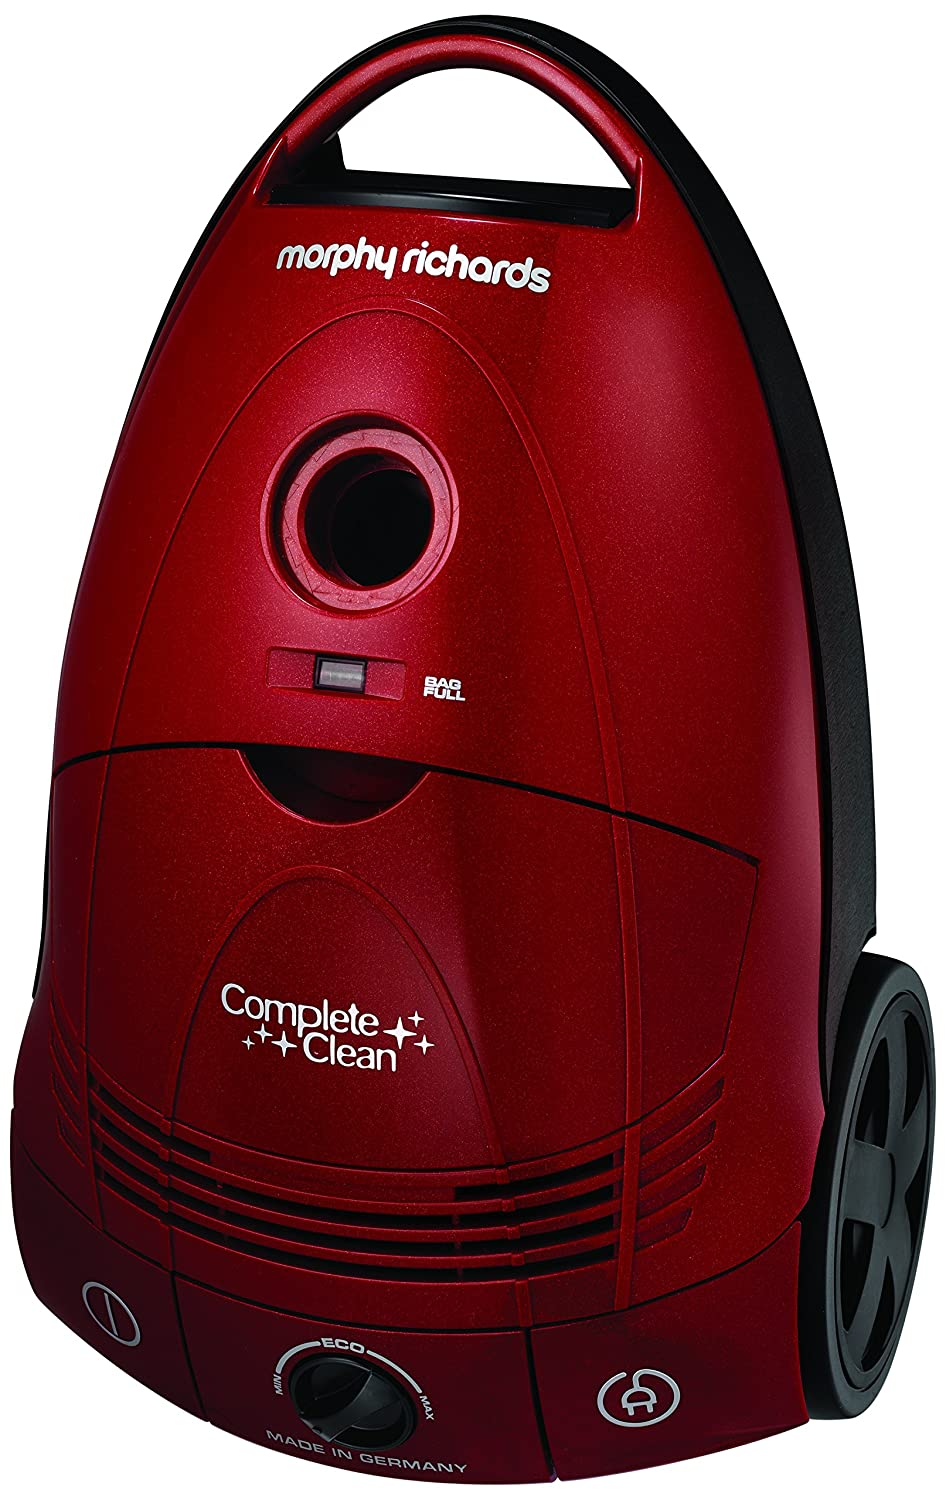 Morphy Richards Bagged Cylinder Vacuum Cleaner 700008 Complete Clean